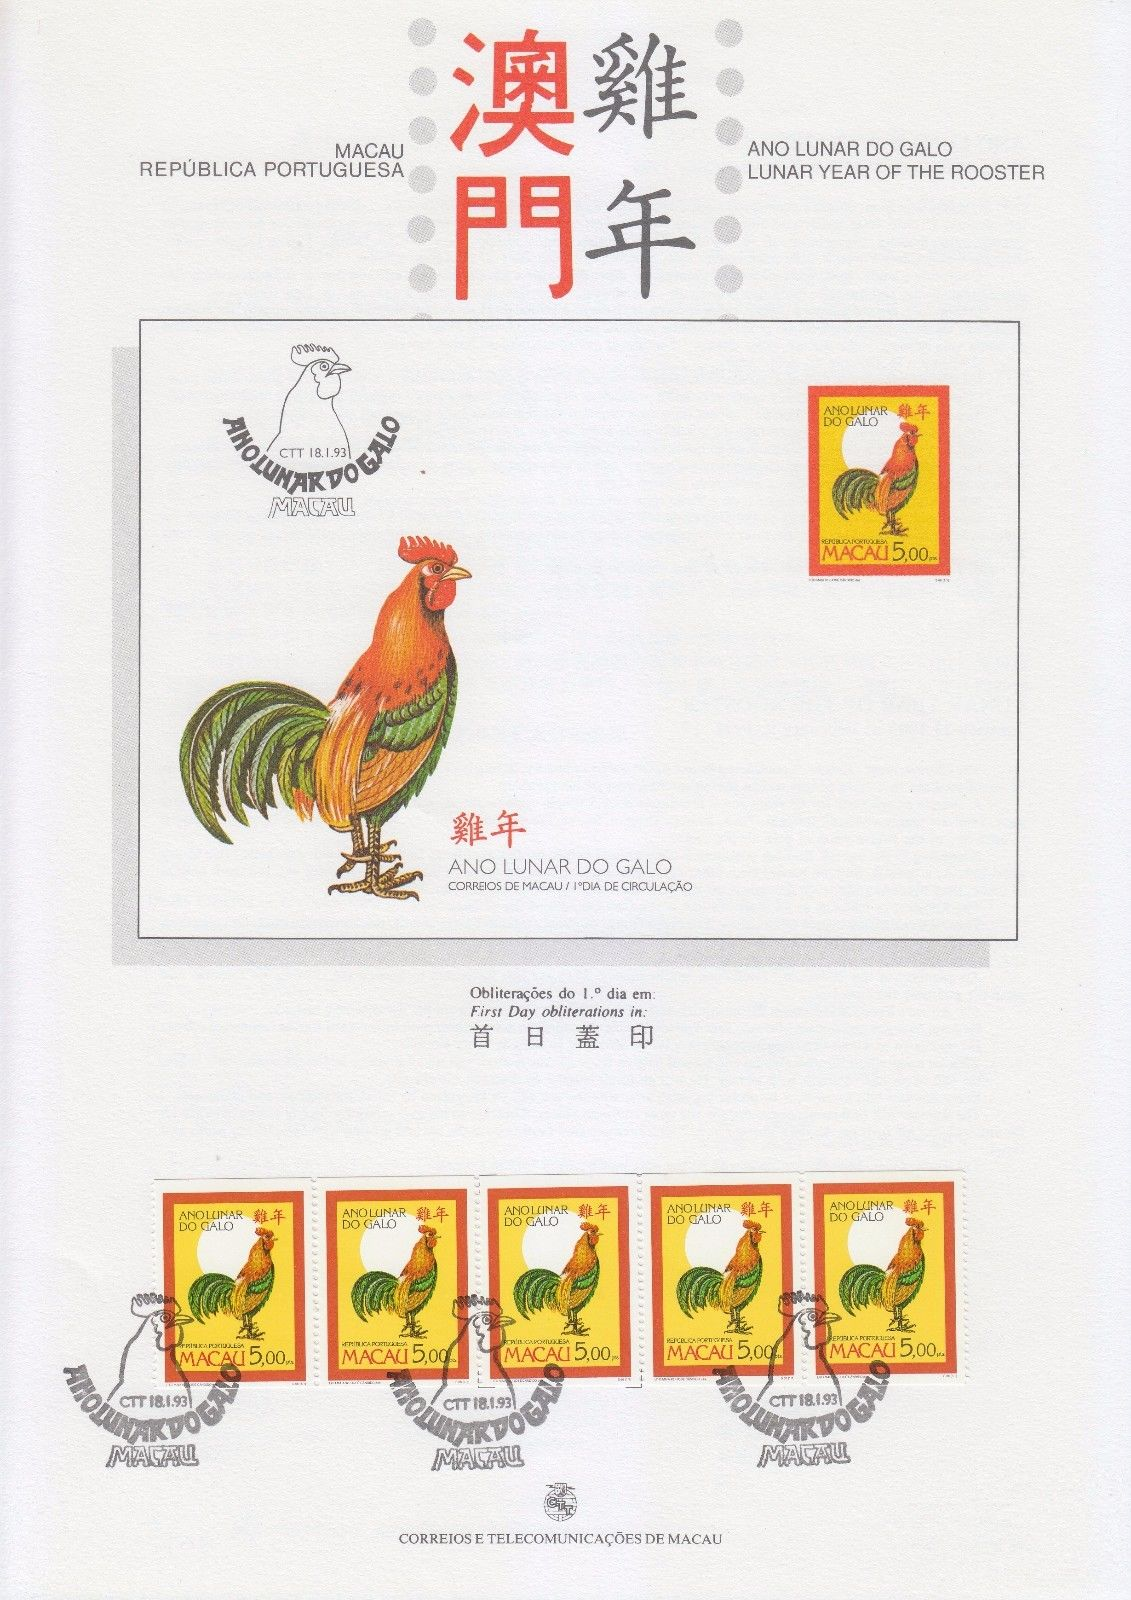 Macao 1993 Year of the Rooster IOPb.jpg